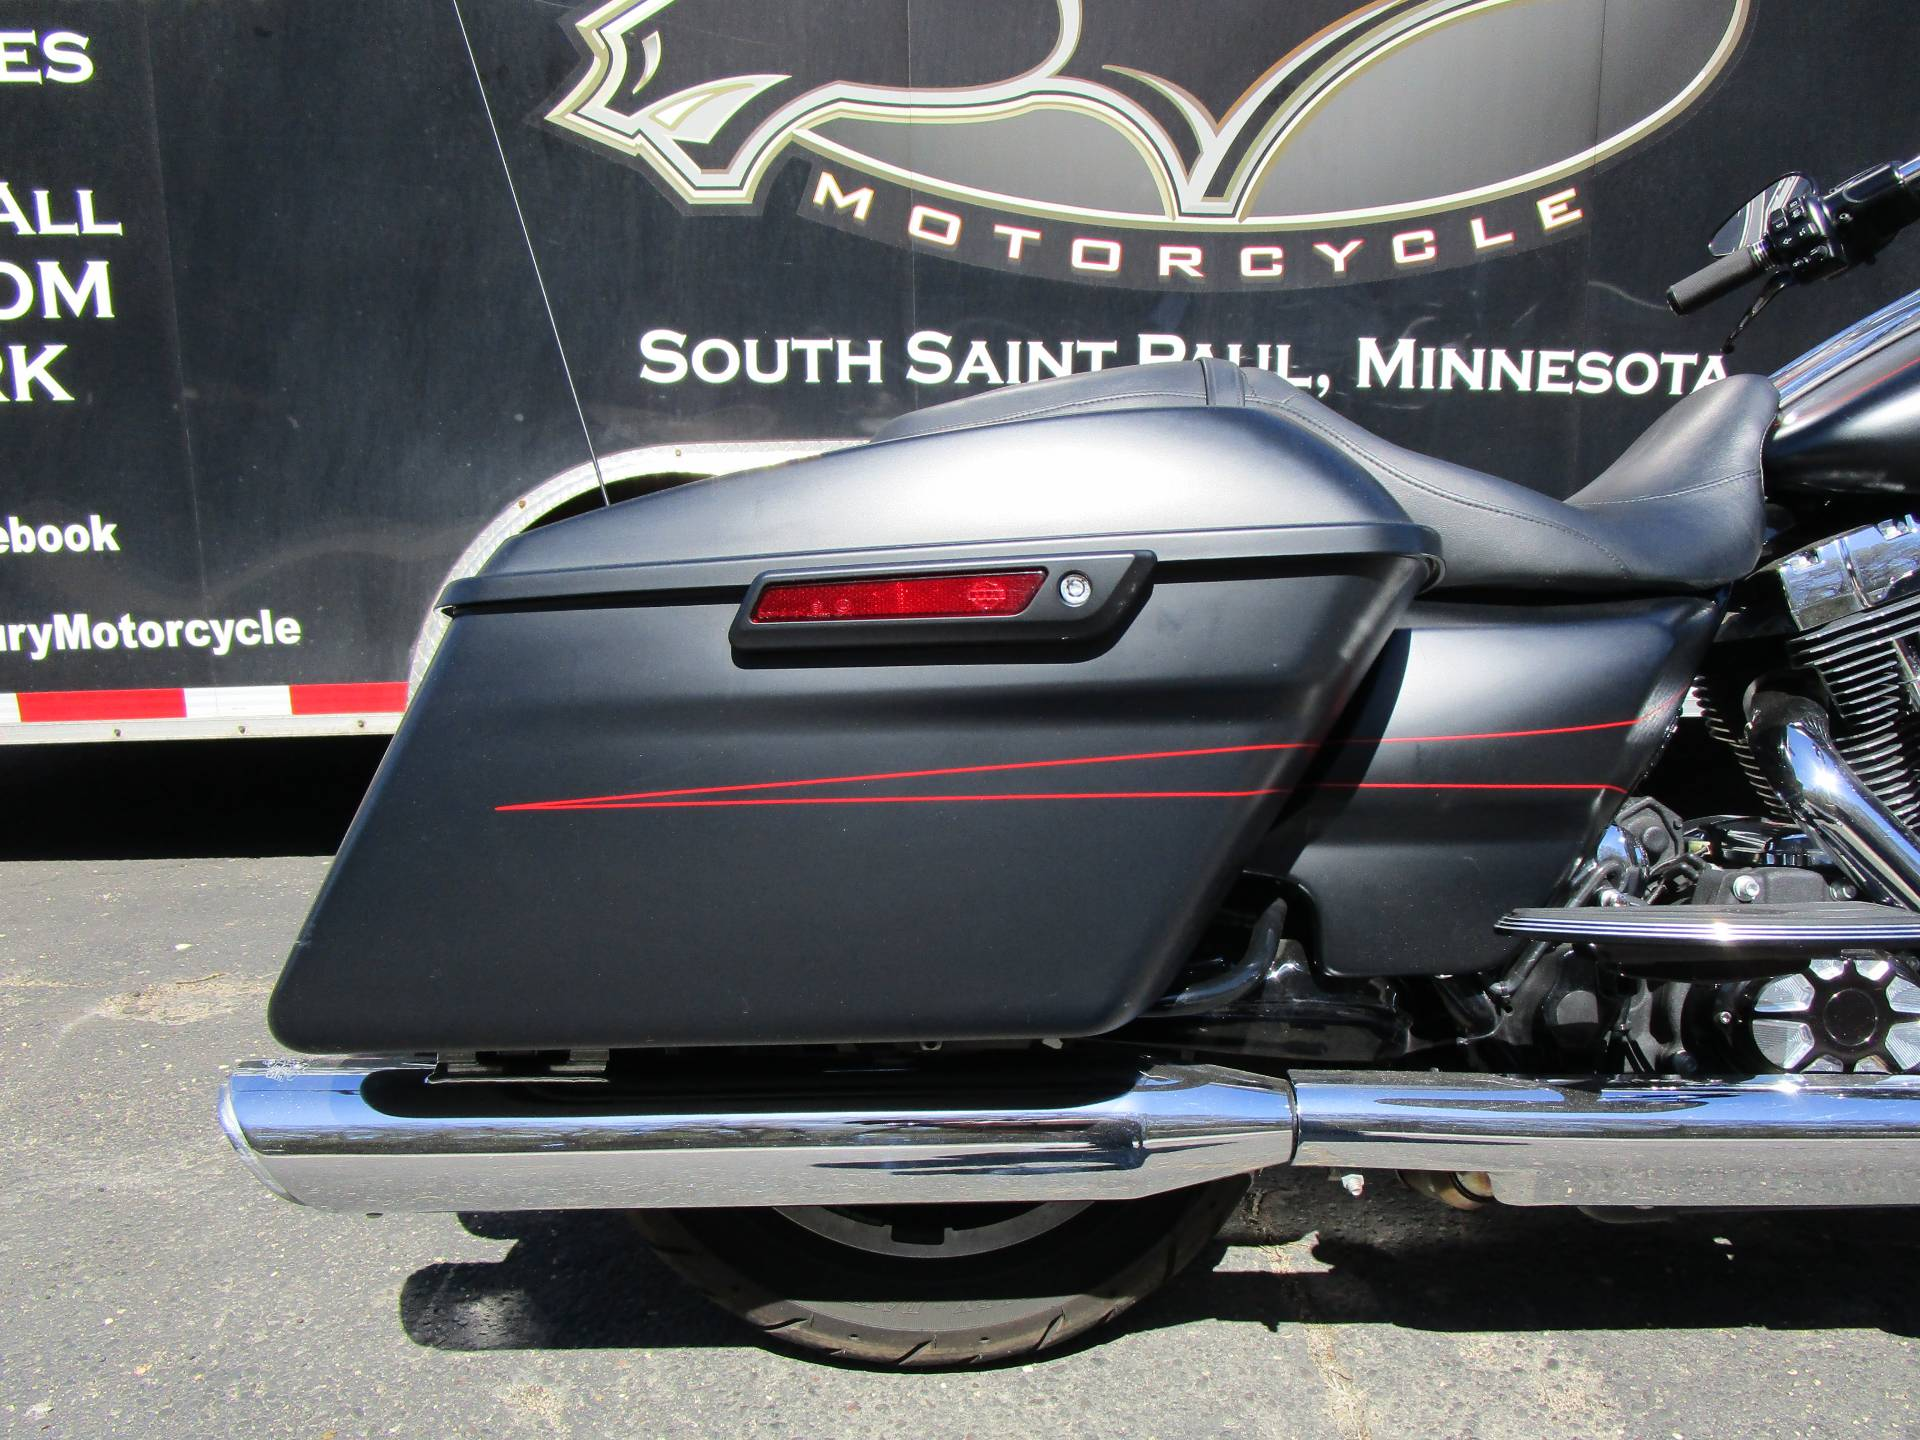 2015 Harley-Davidson FLTRXS ROAD GLIDE SPECIAL in South Saint Paul, Minnesota - Photo 5